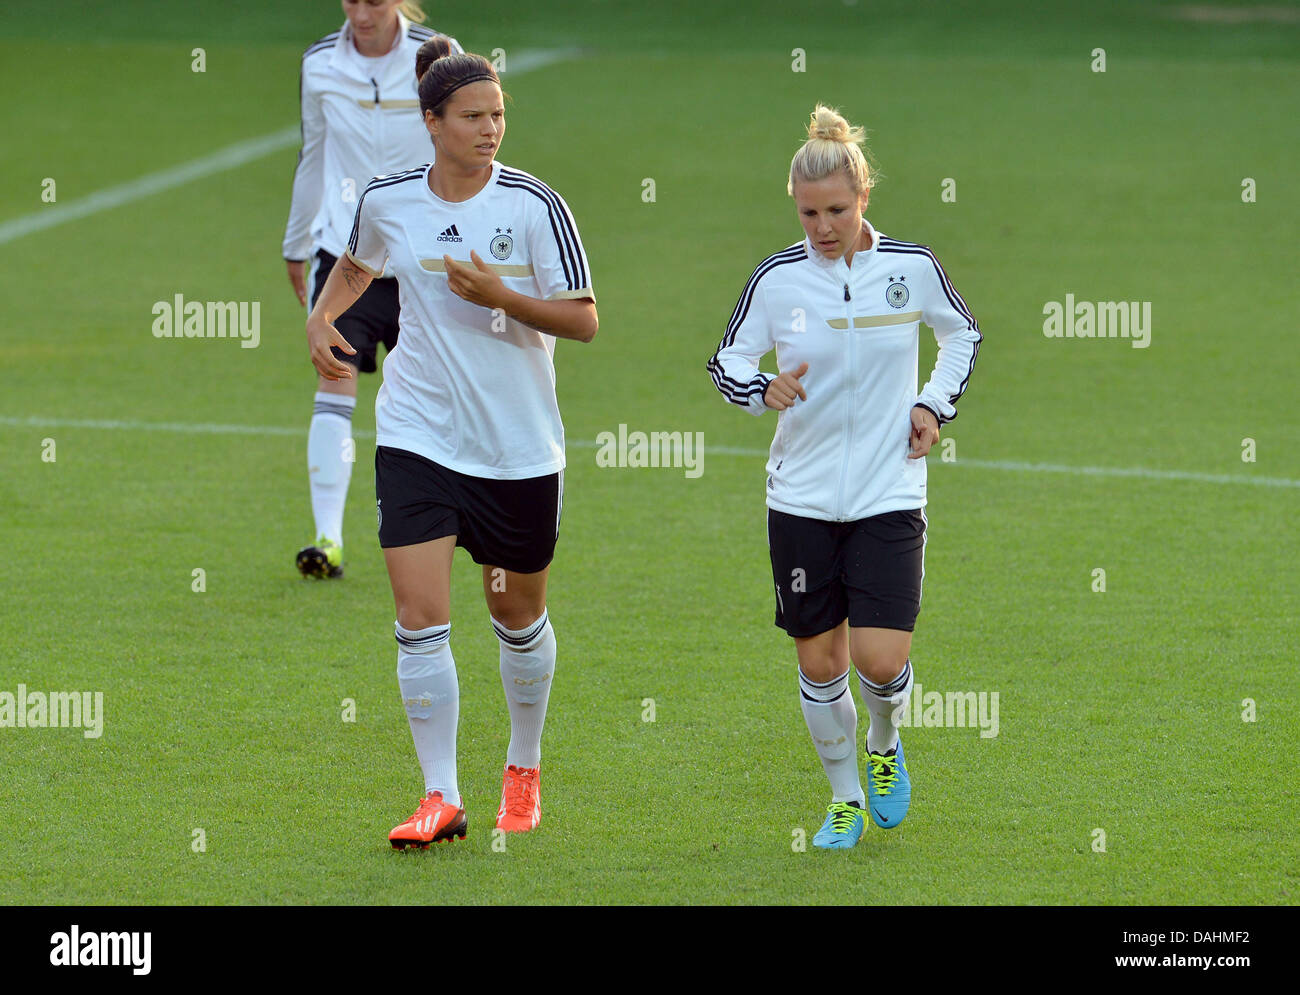 Germany's Dzsenifer Marozsan (L) and Svenja Huth take part in the final training session during the UEFAWomen's - Stock Image